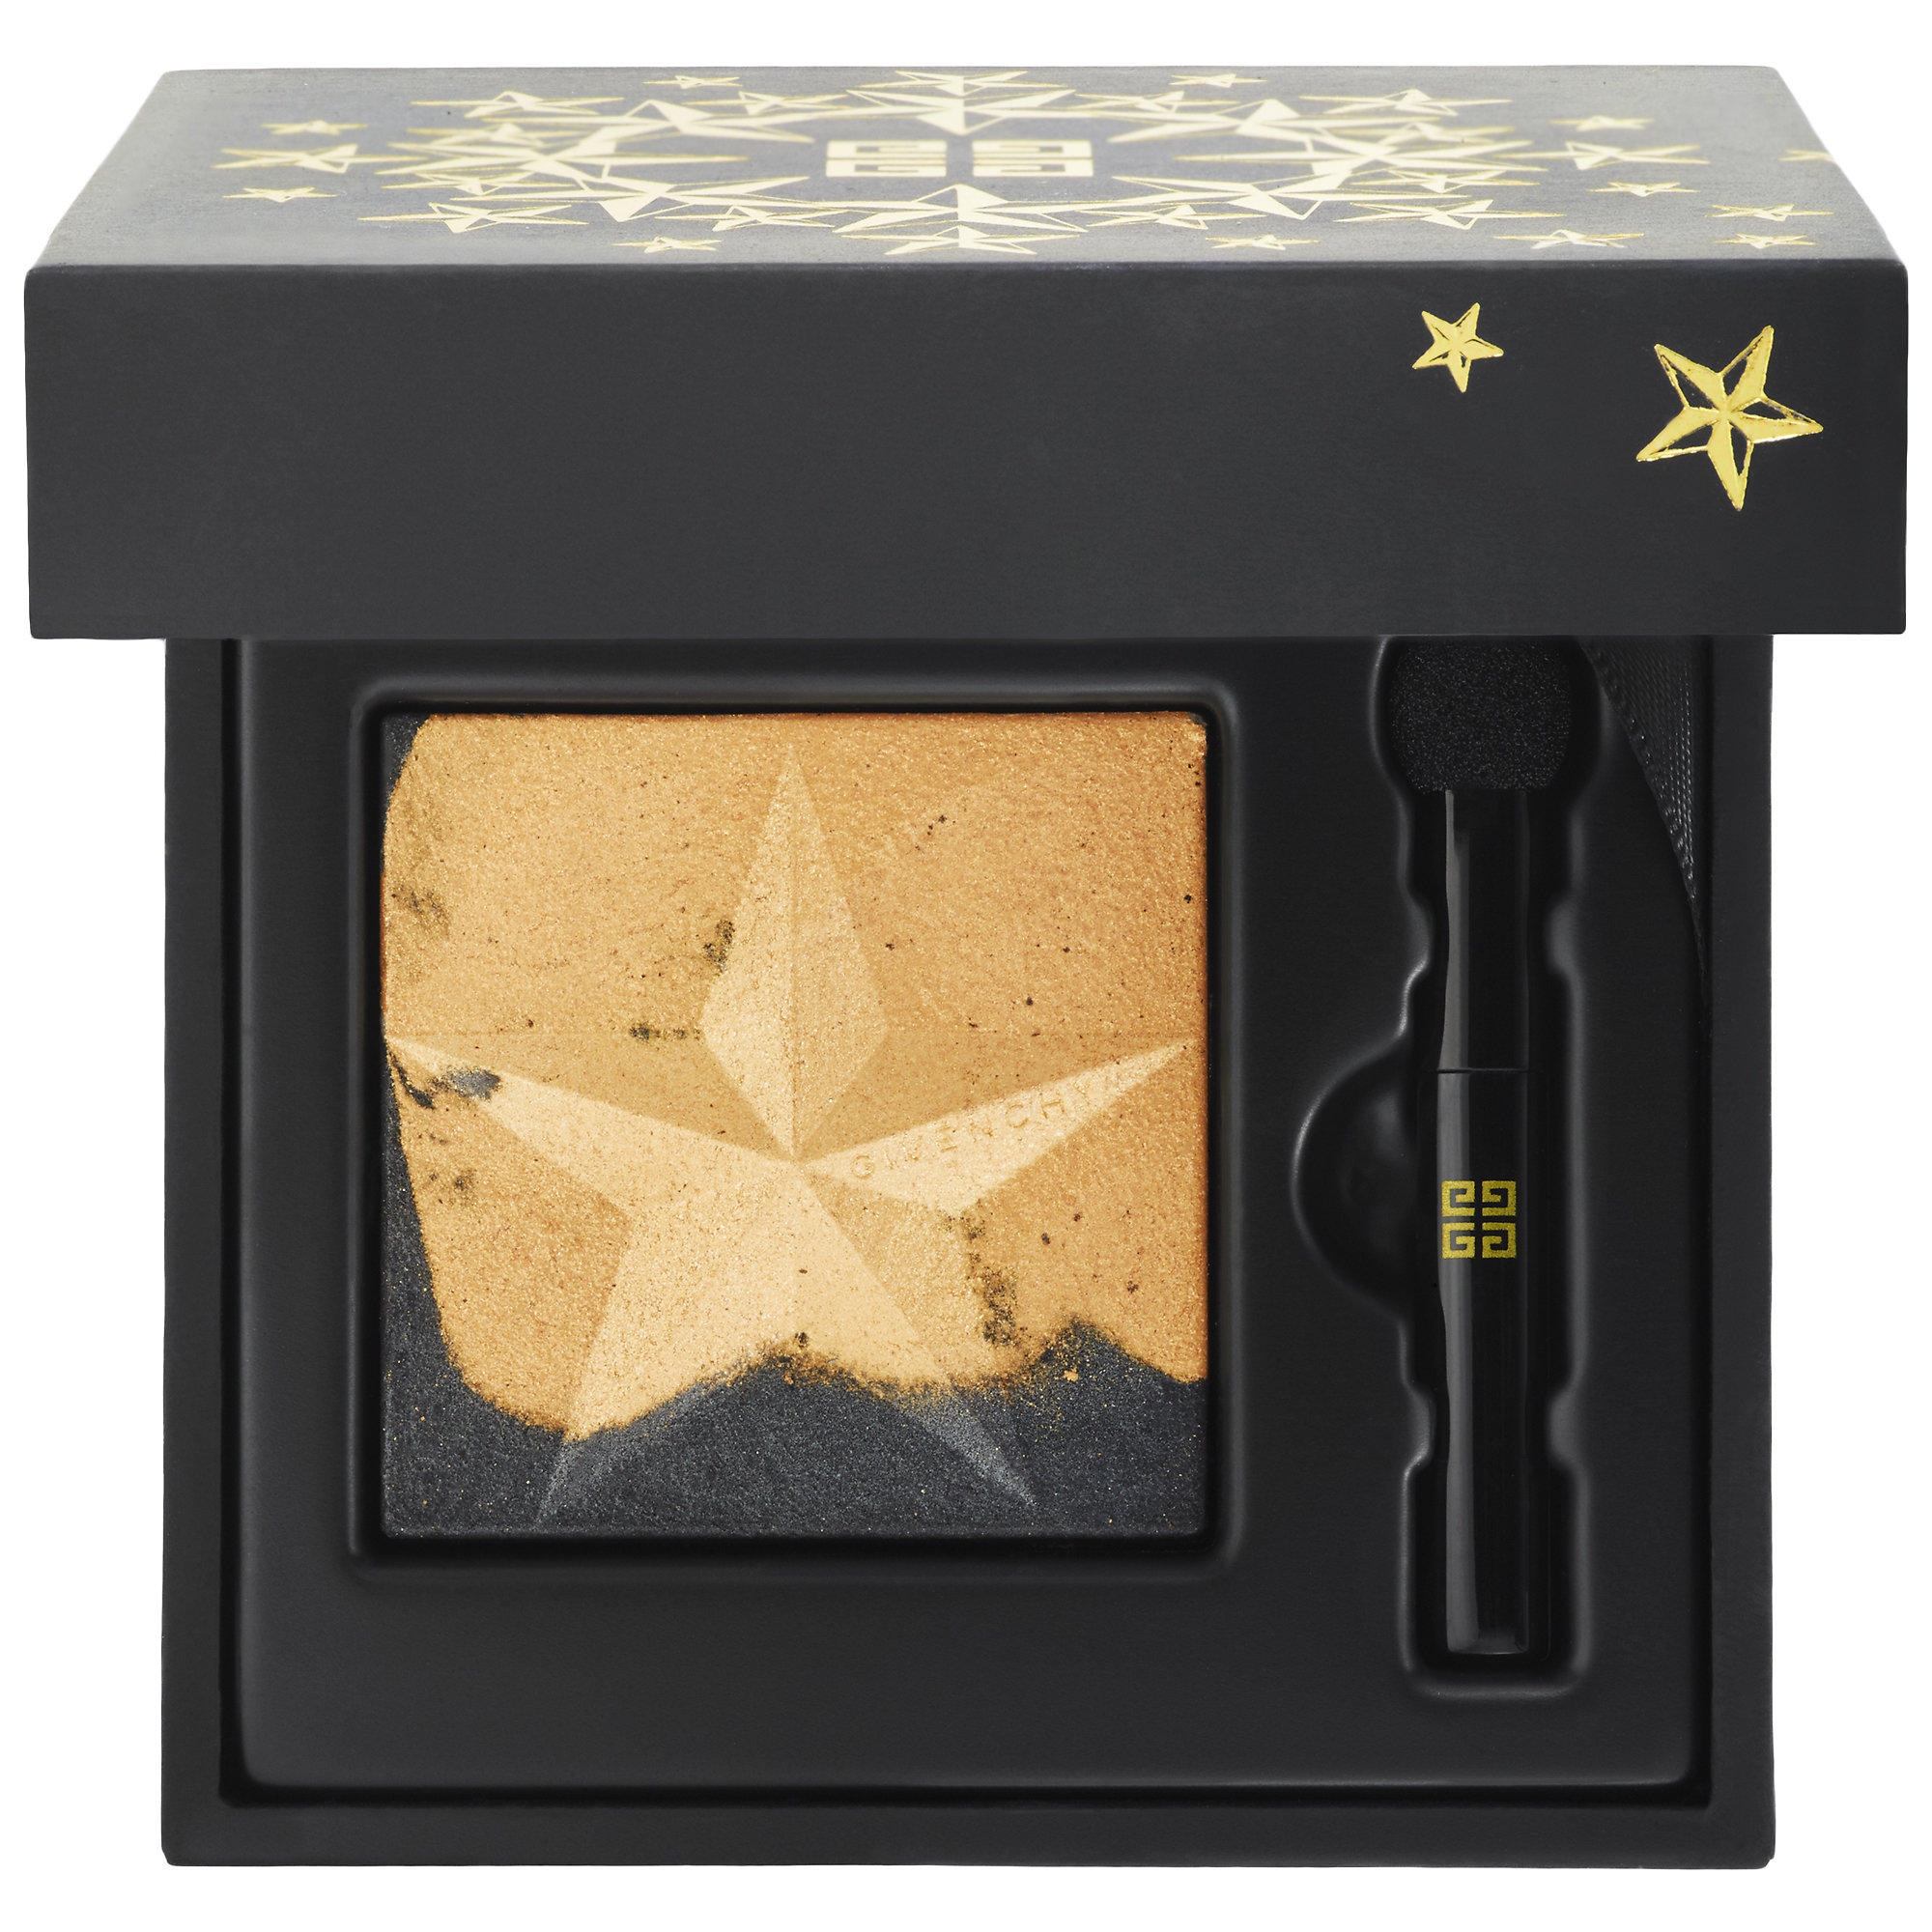 New ReleaseGivenchy relaunched Ondulations D'or Eyeshadow